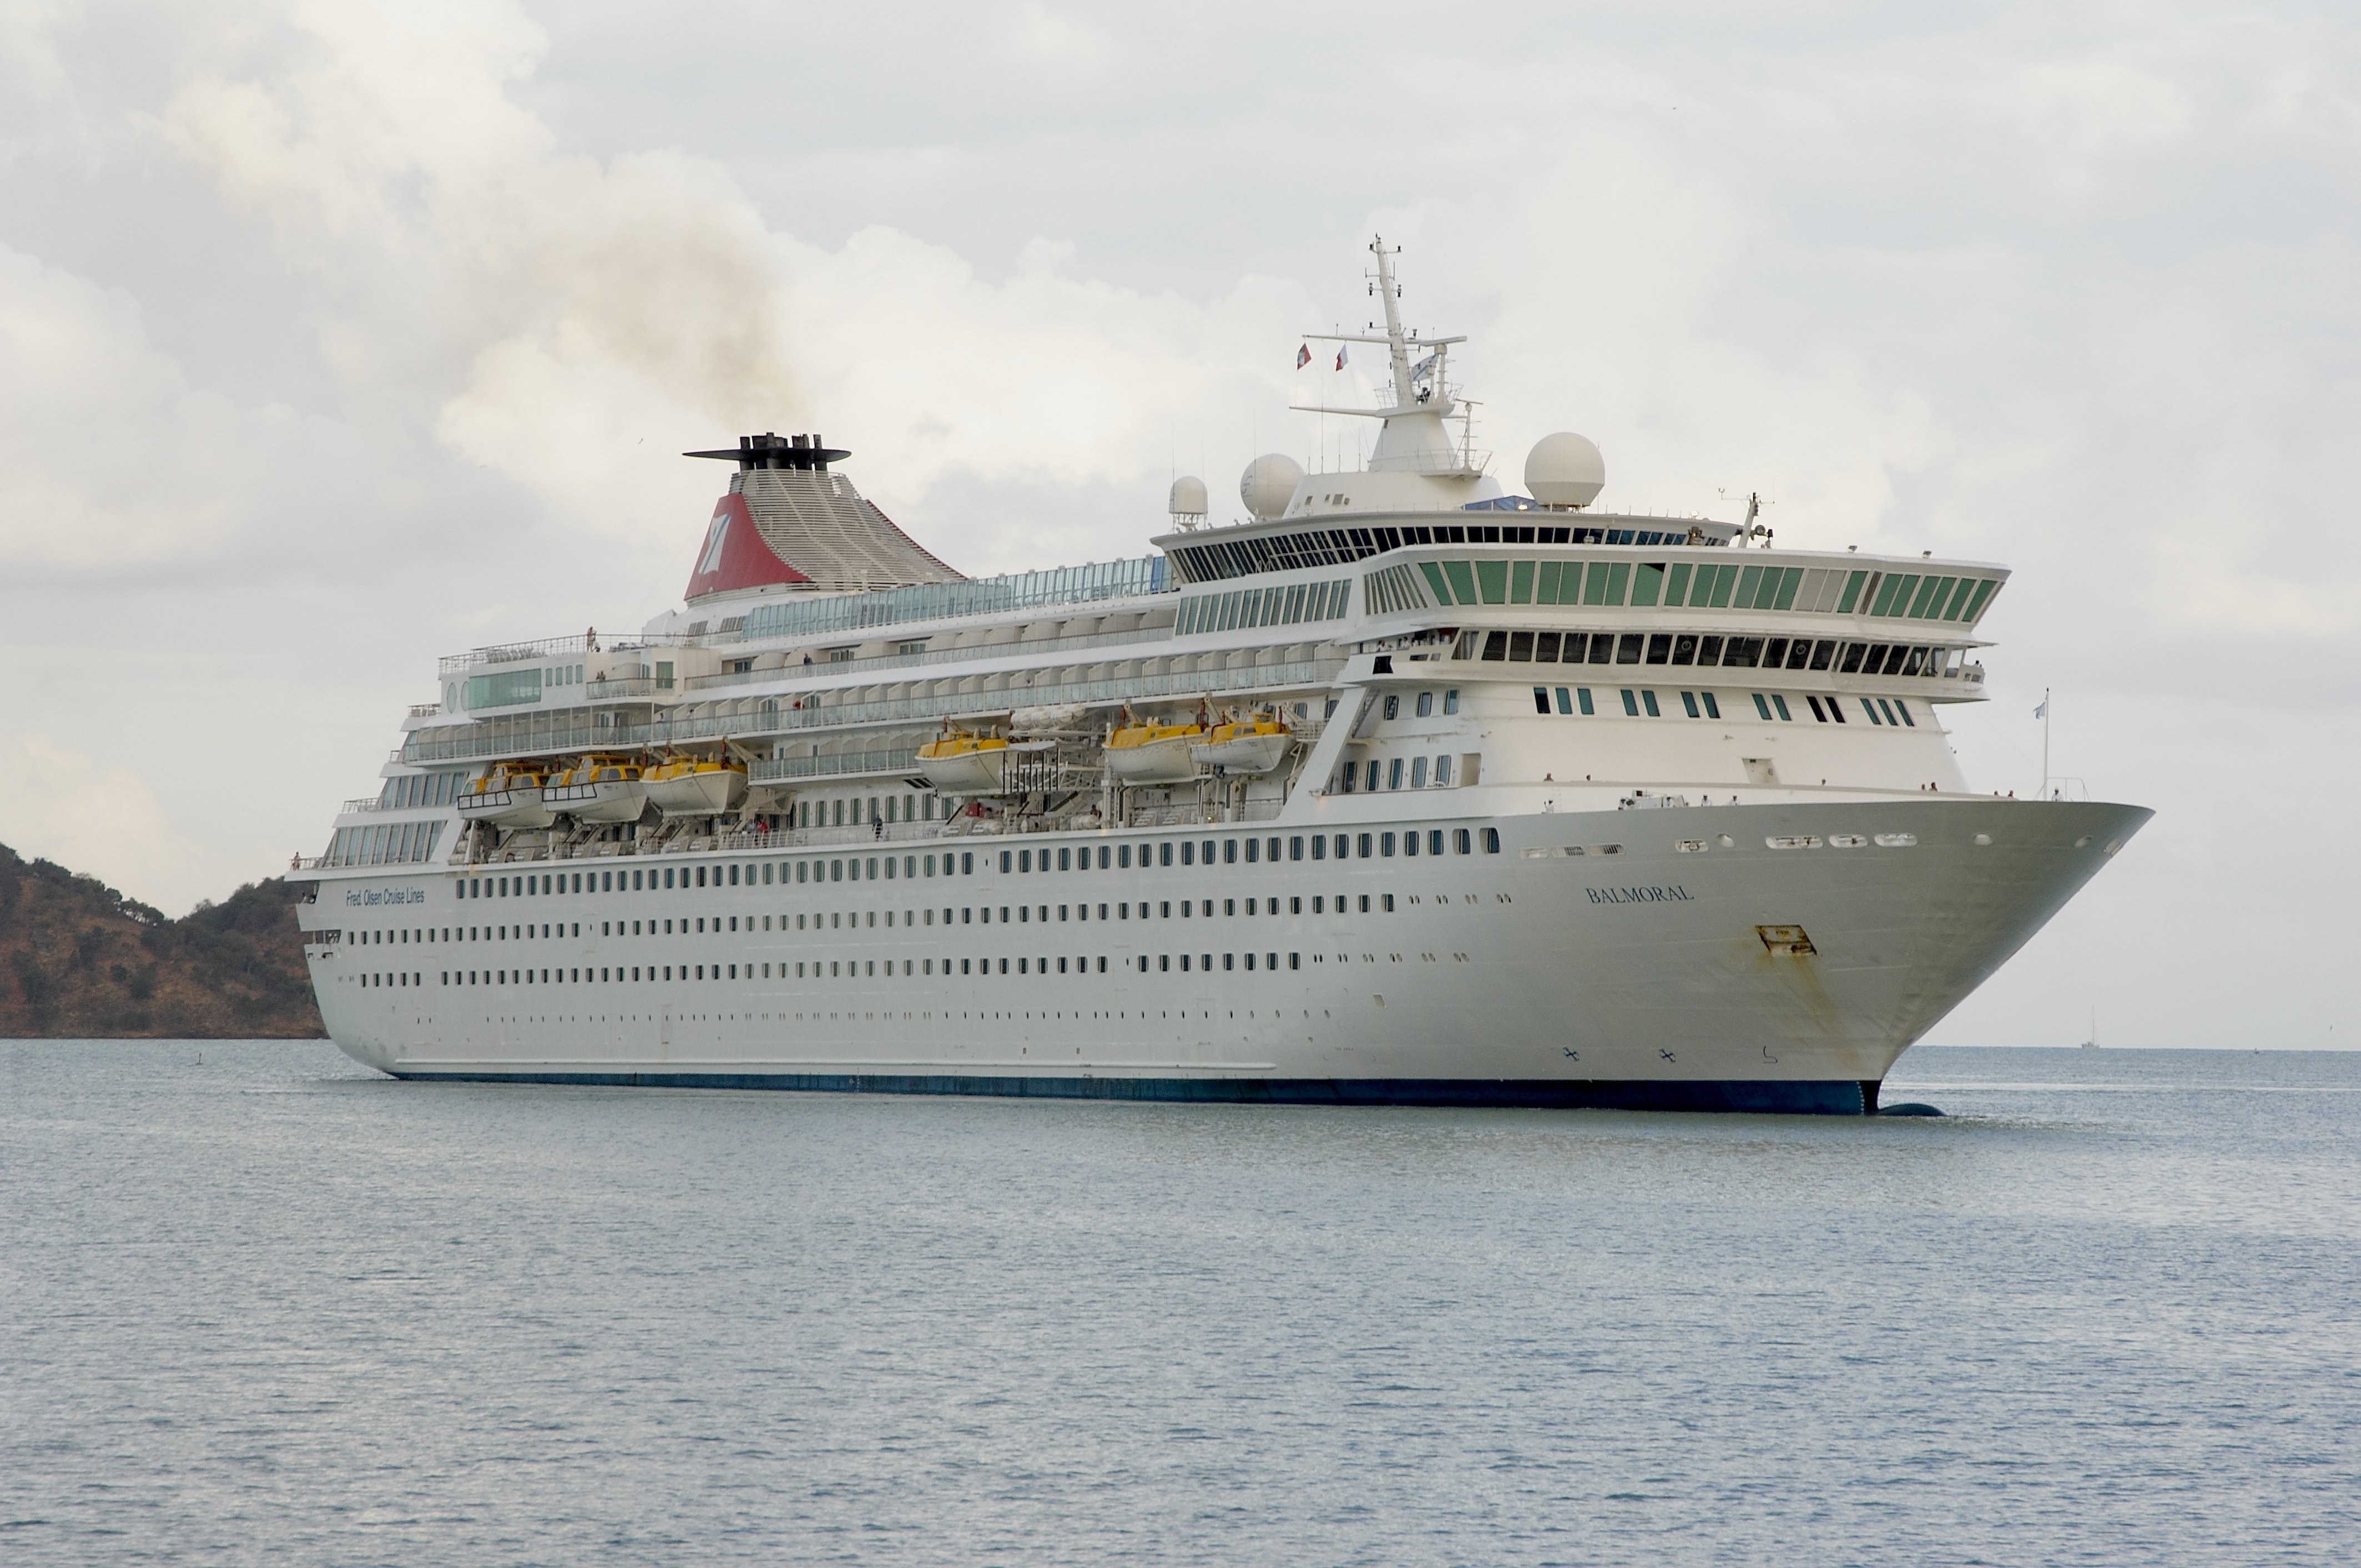 Cruise Ship Norovirus Season Begins: 252 Passengers Sick On Ship Docked In Maine